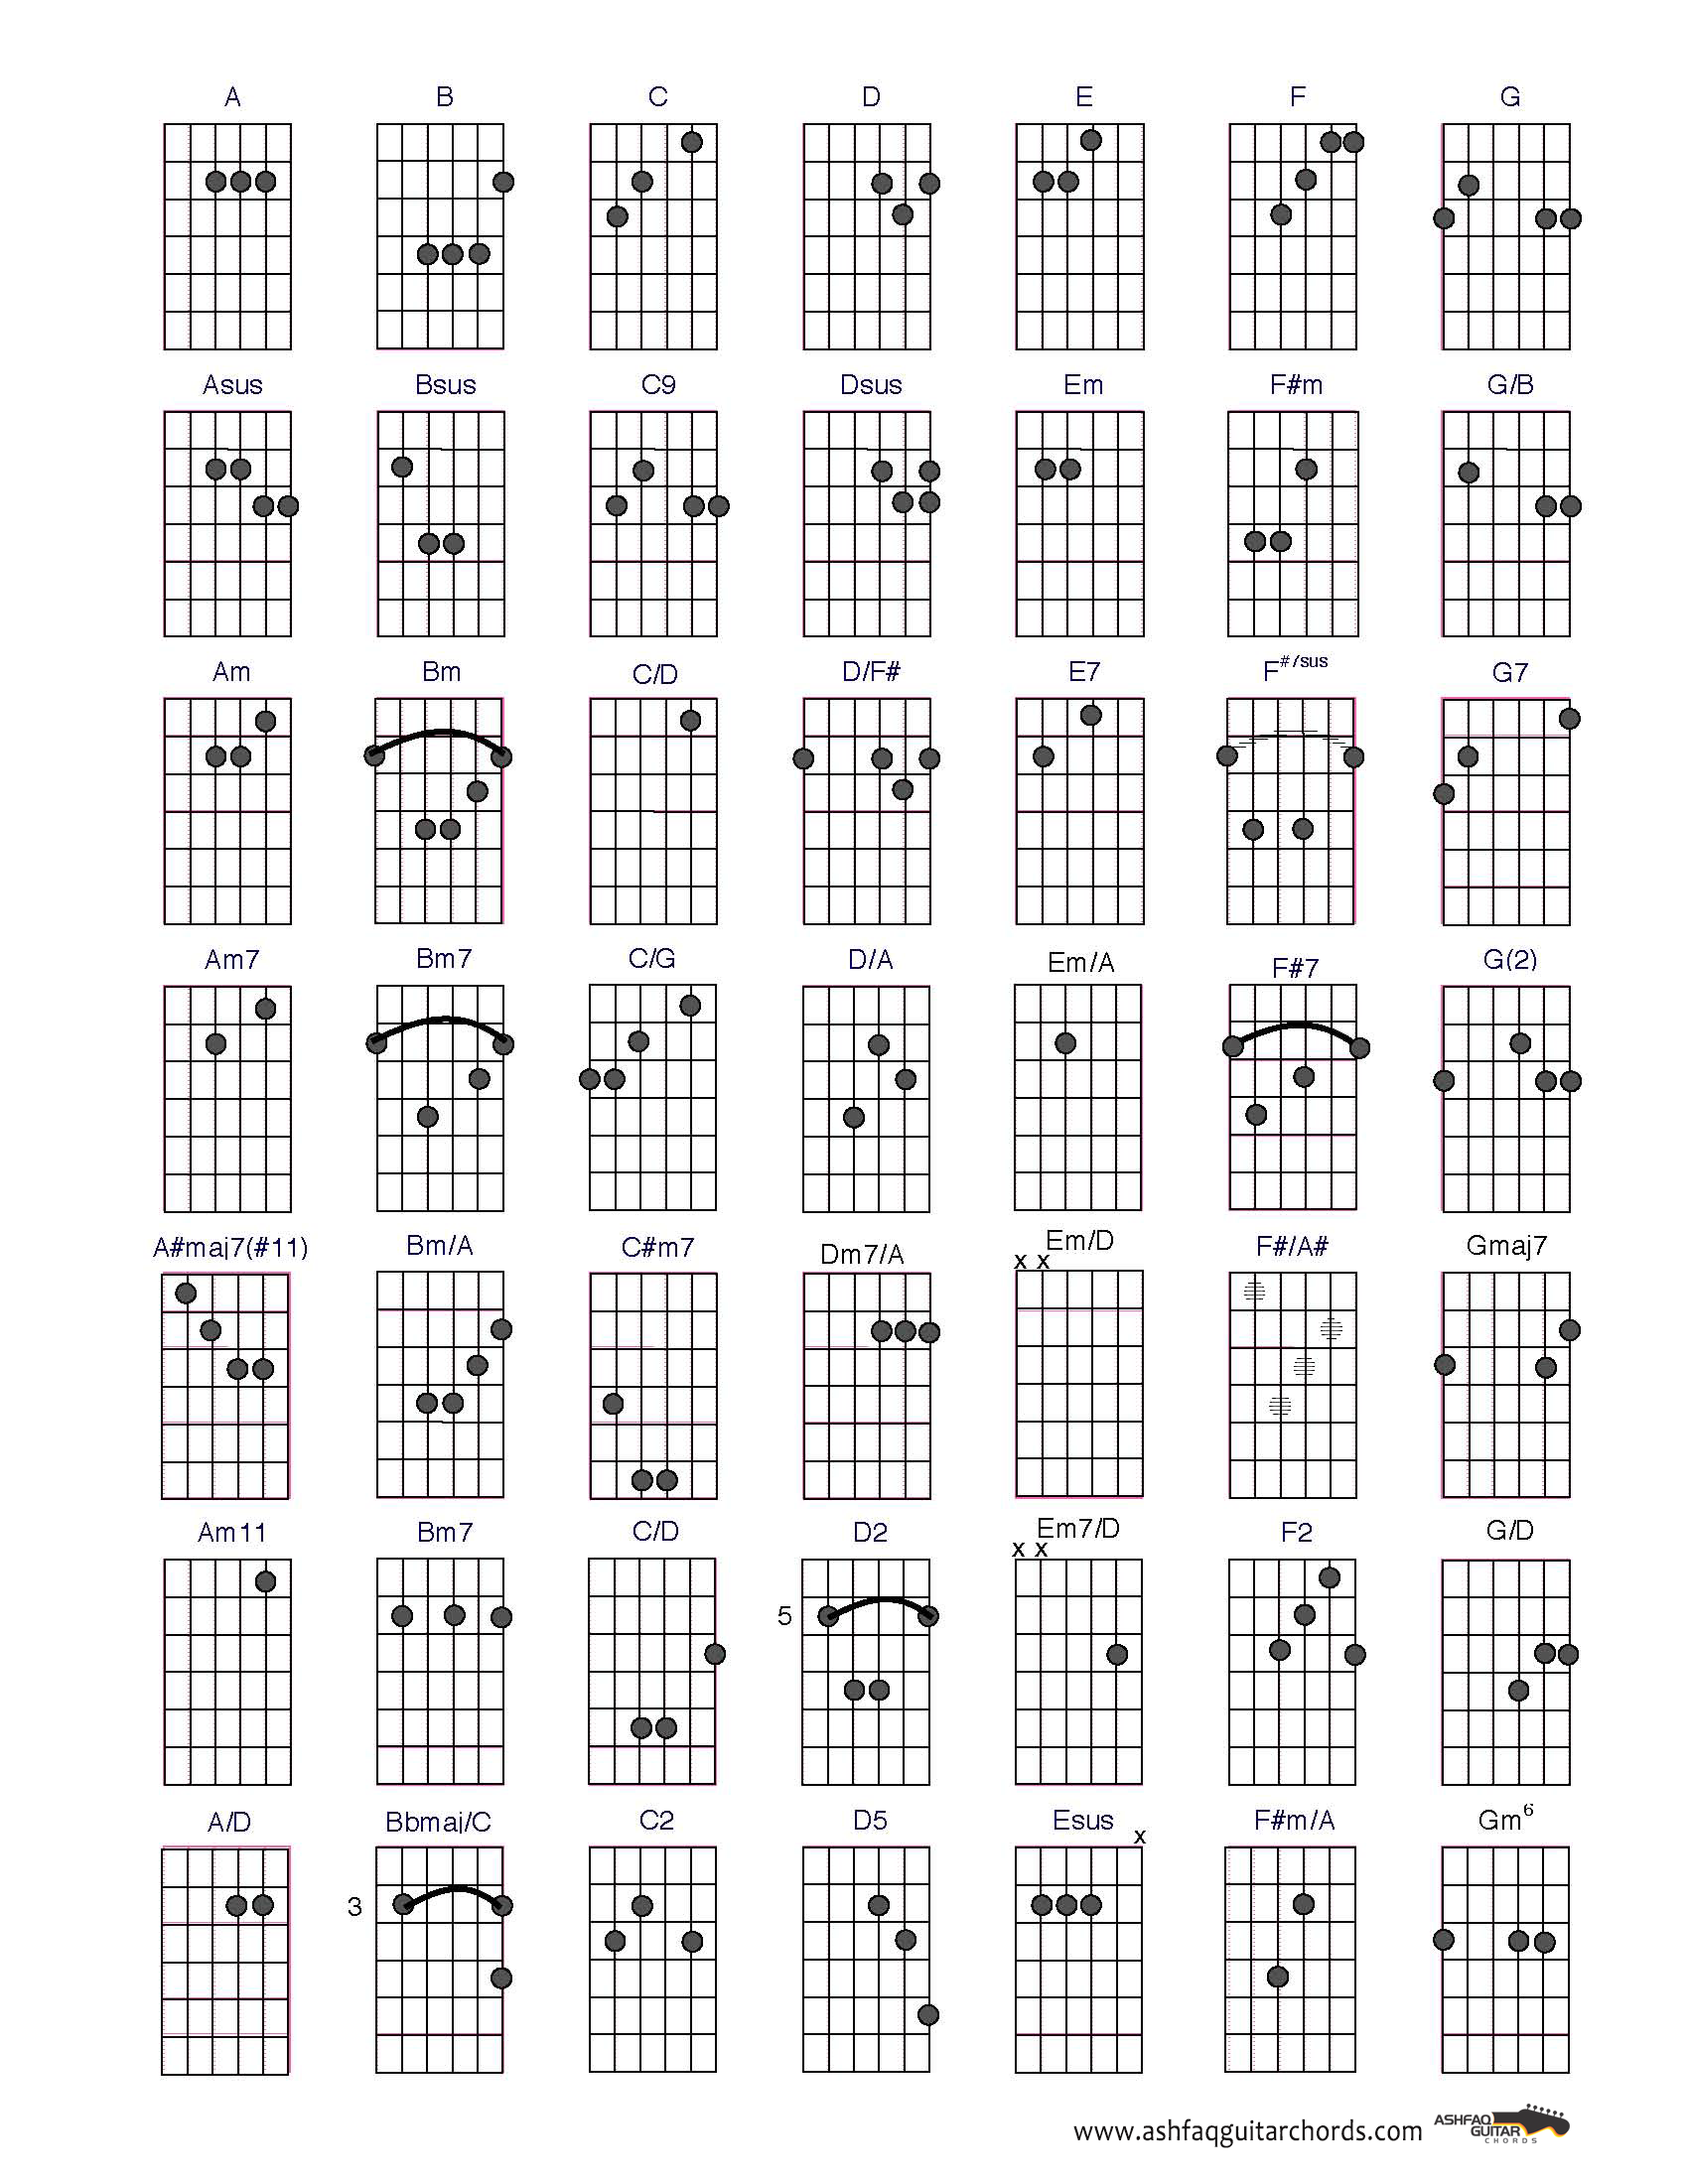 Guitar Chord Chart For All The Important Chords You Need To Know To